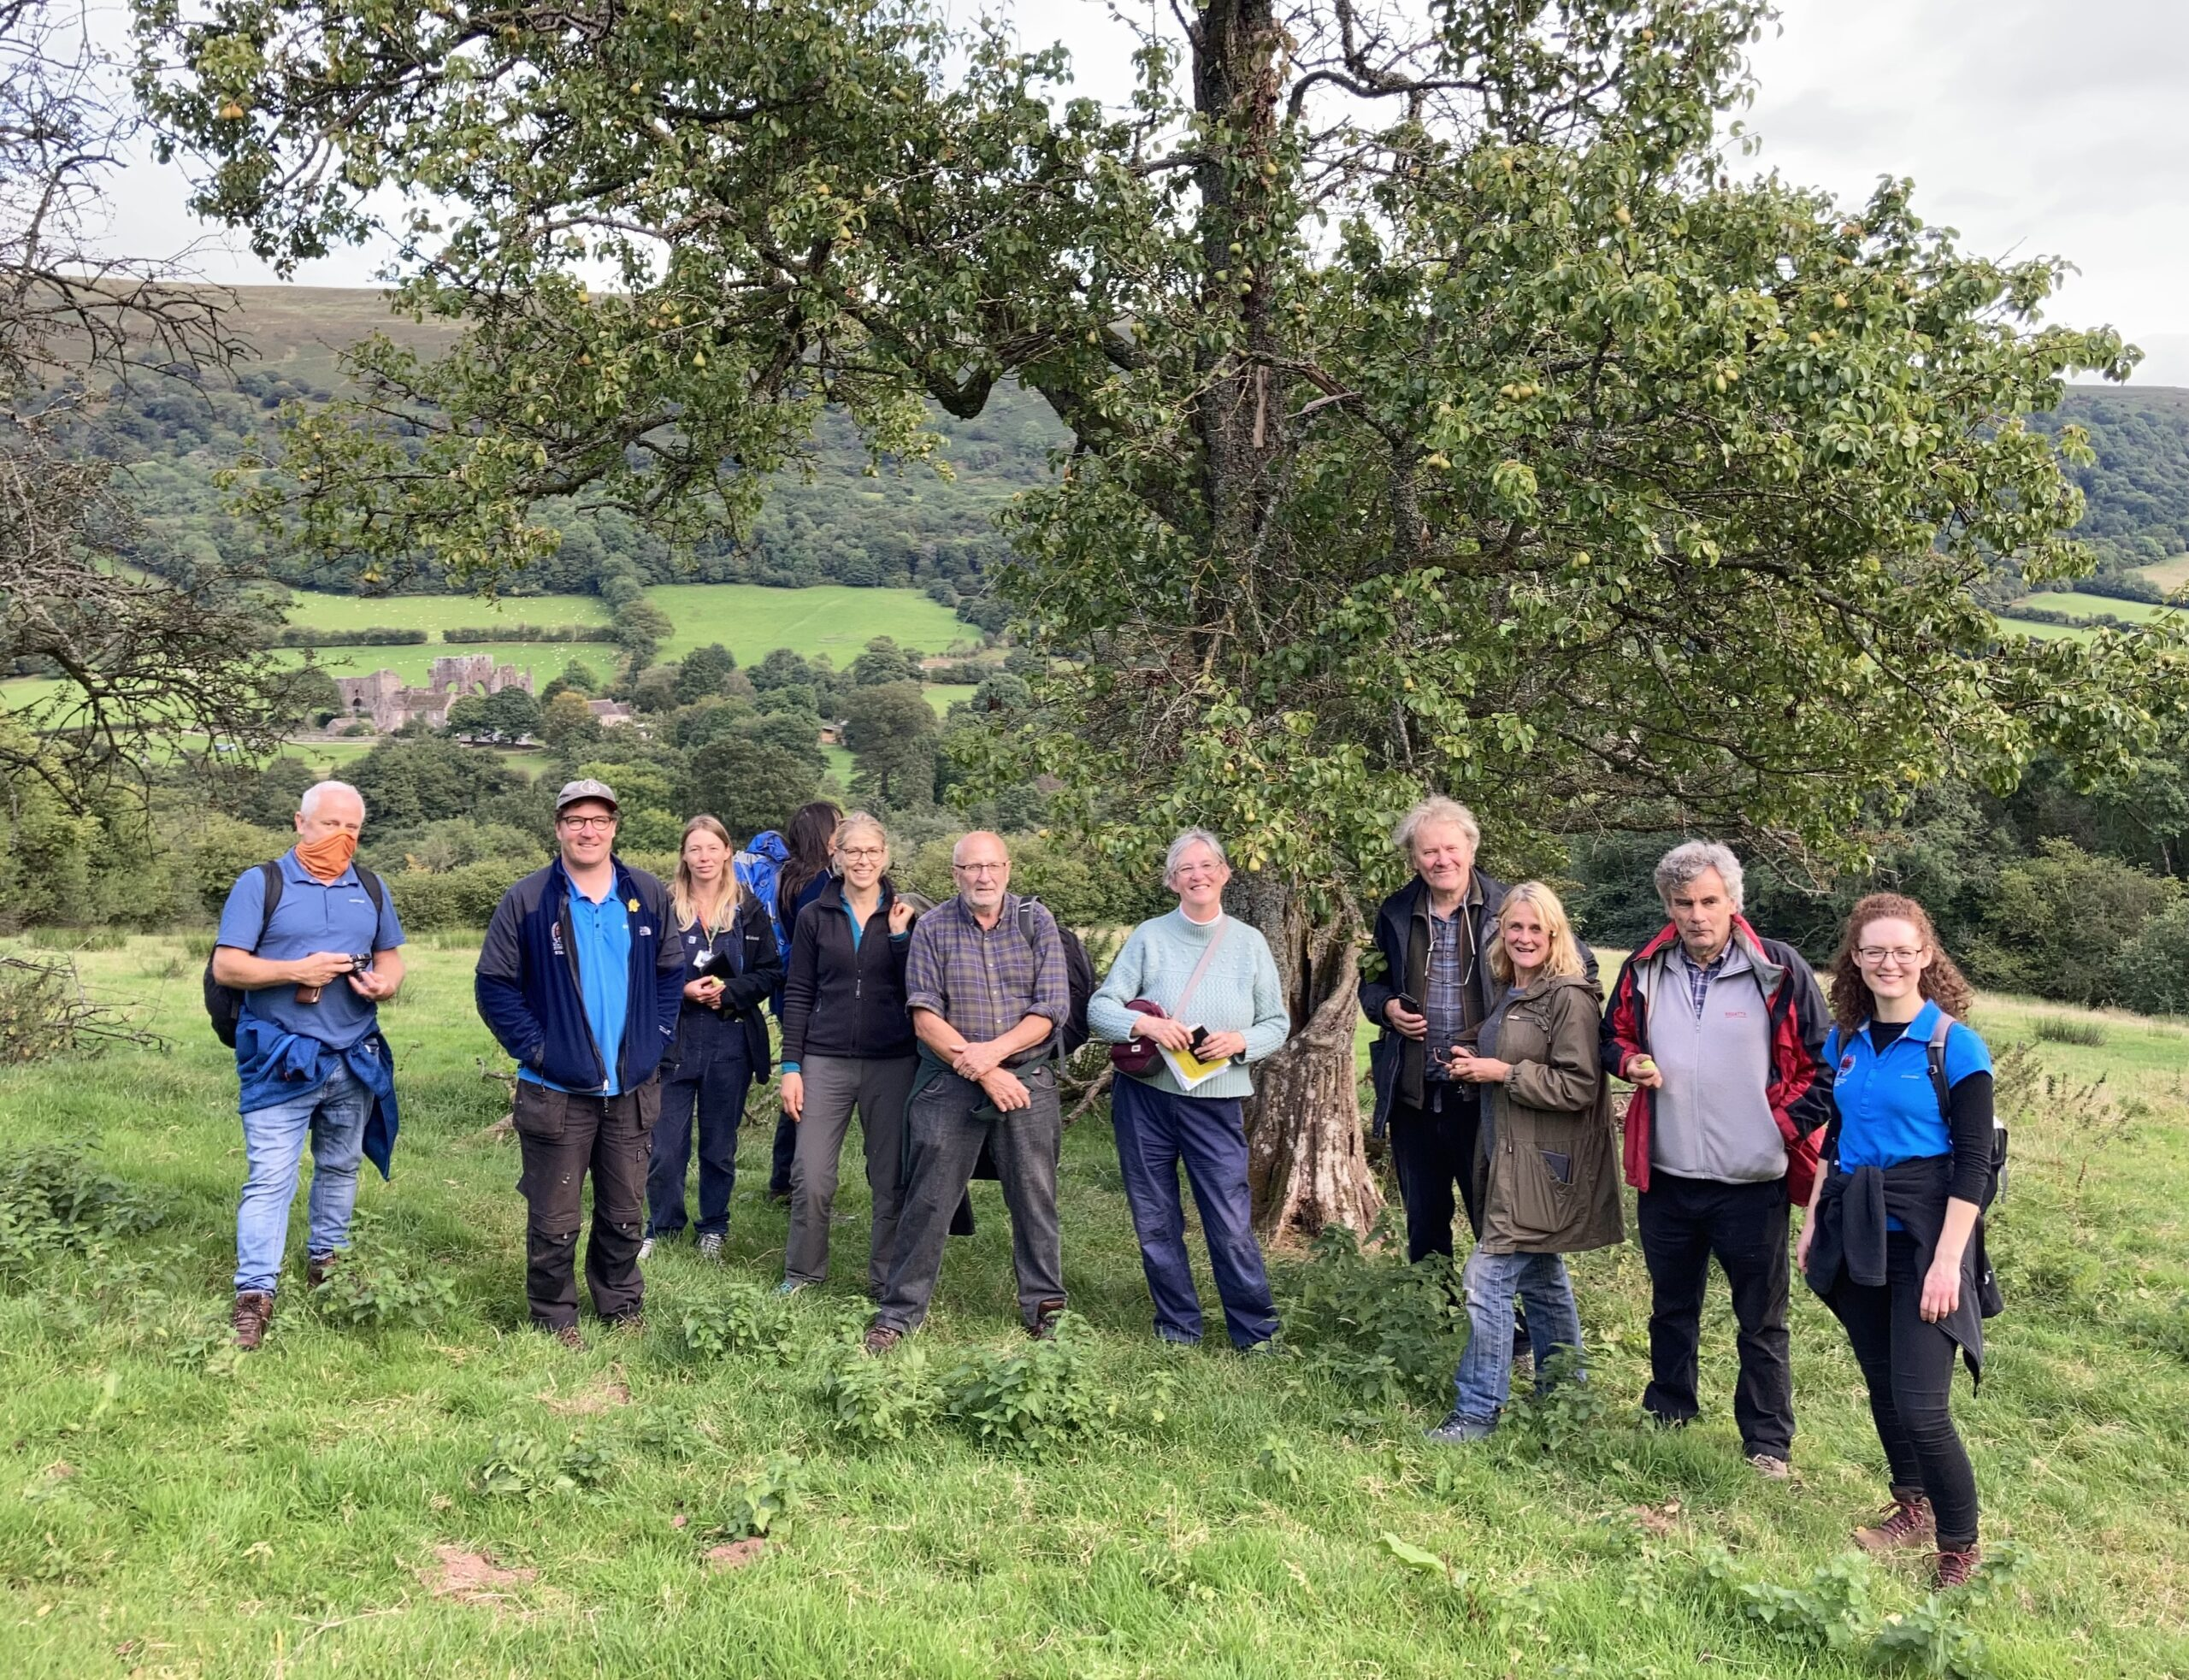 Brecon Beacons Tree Wardens discover an ancient pear tree on their first official tree hunt above Llanthony Priory.